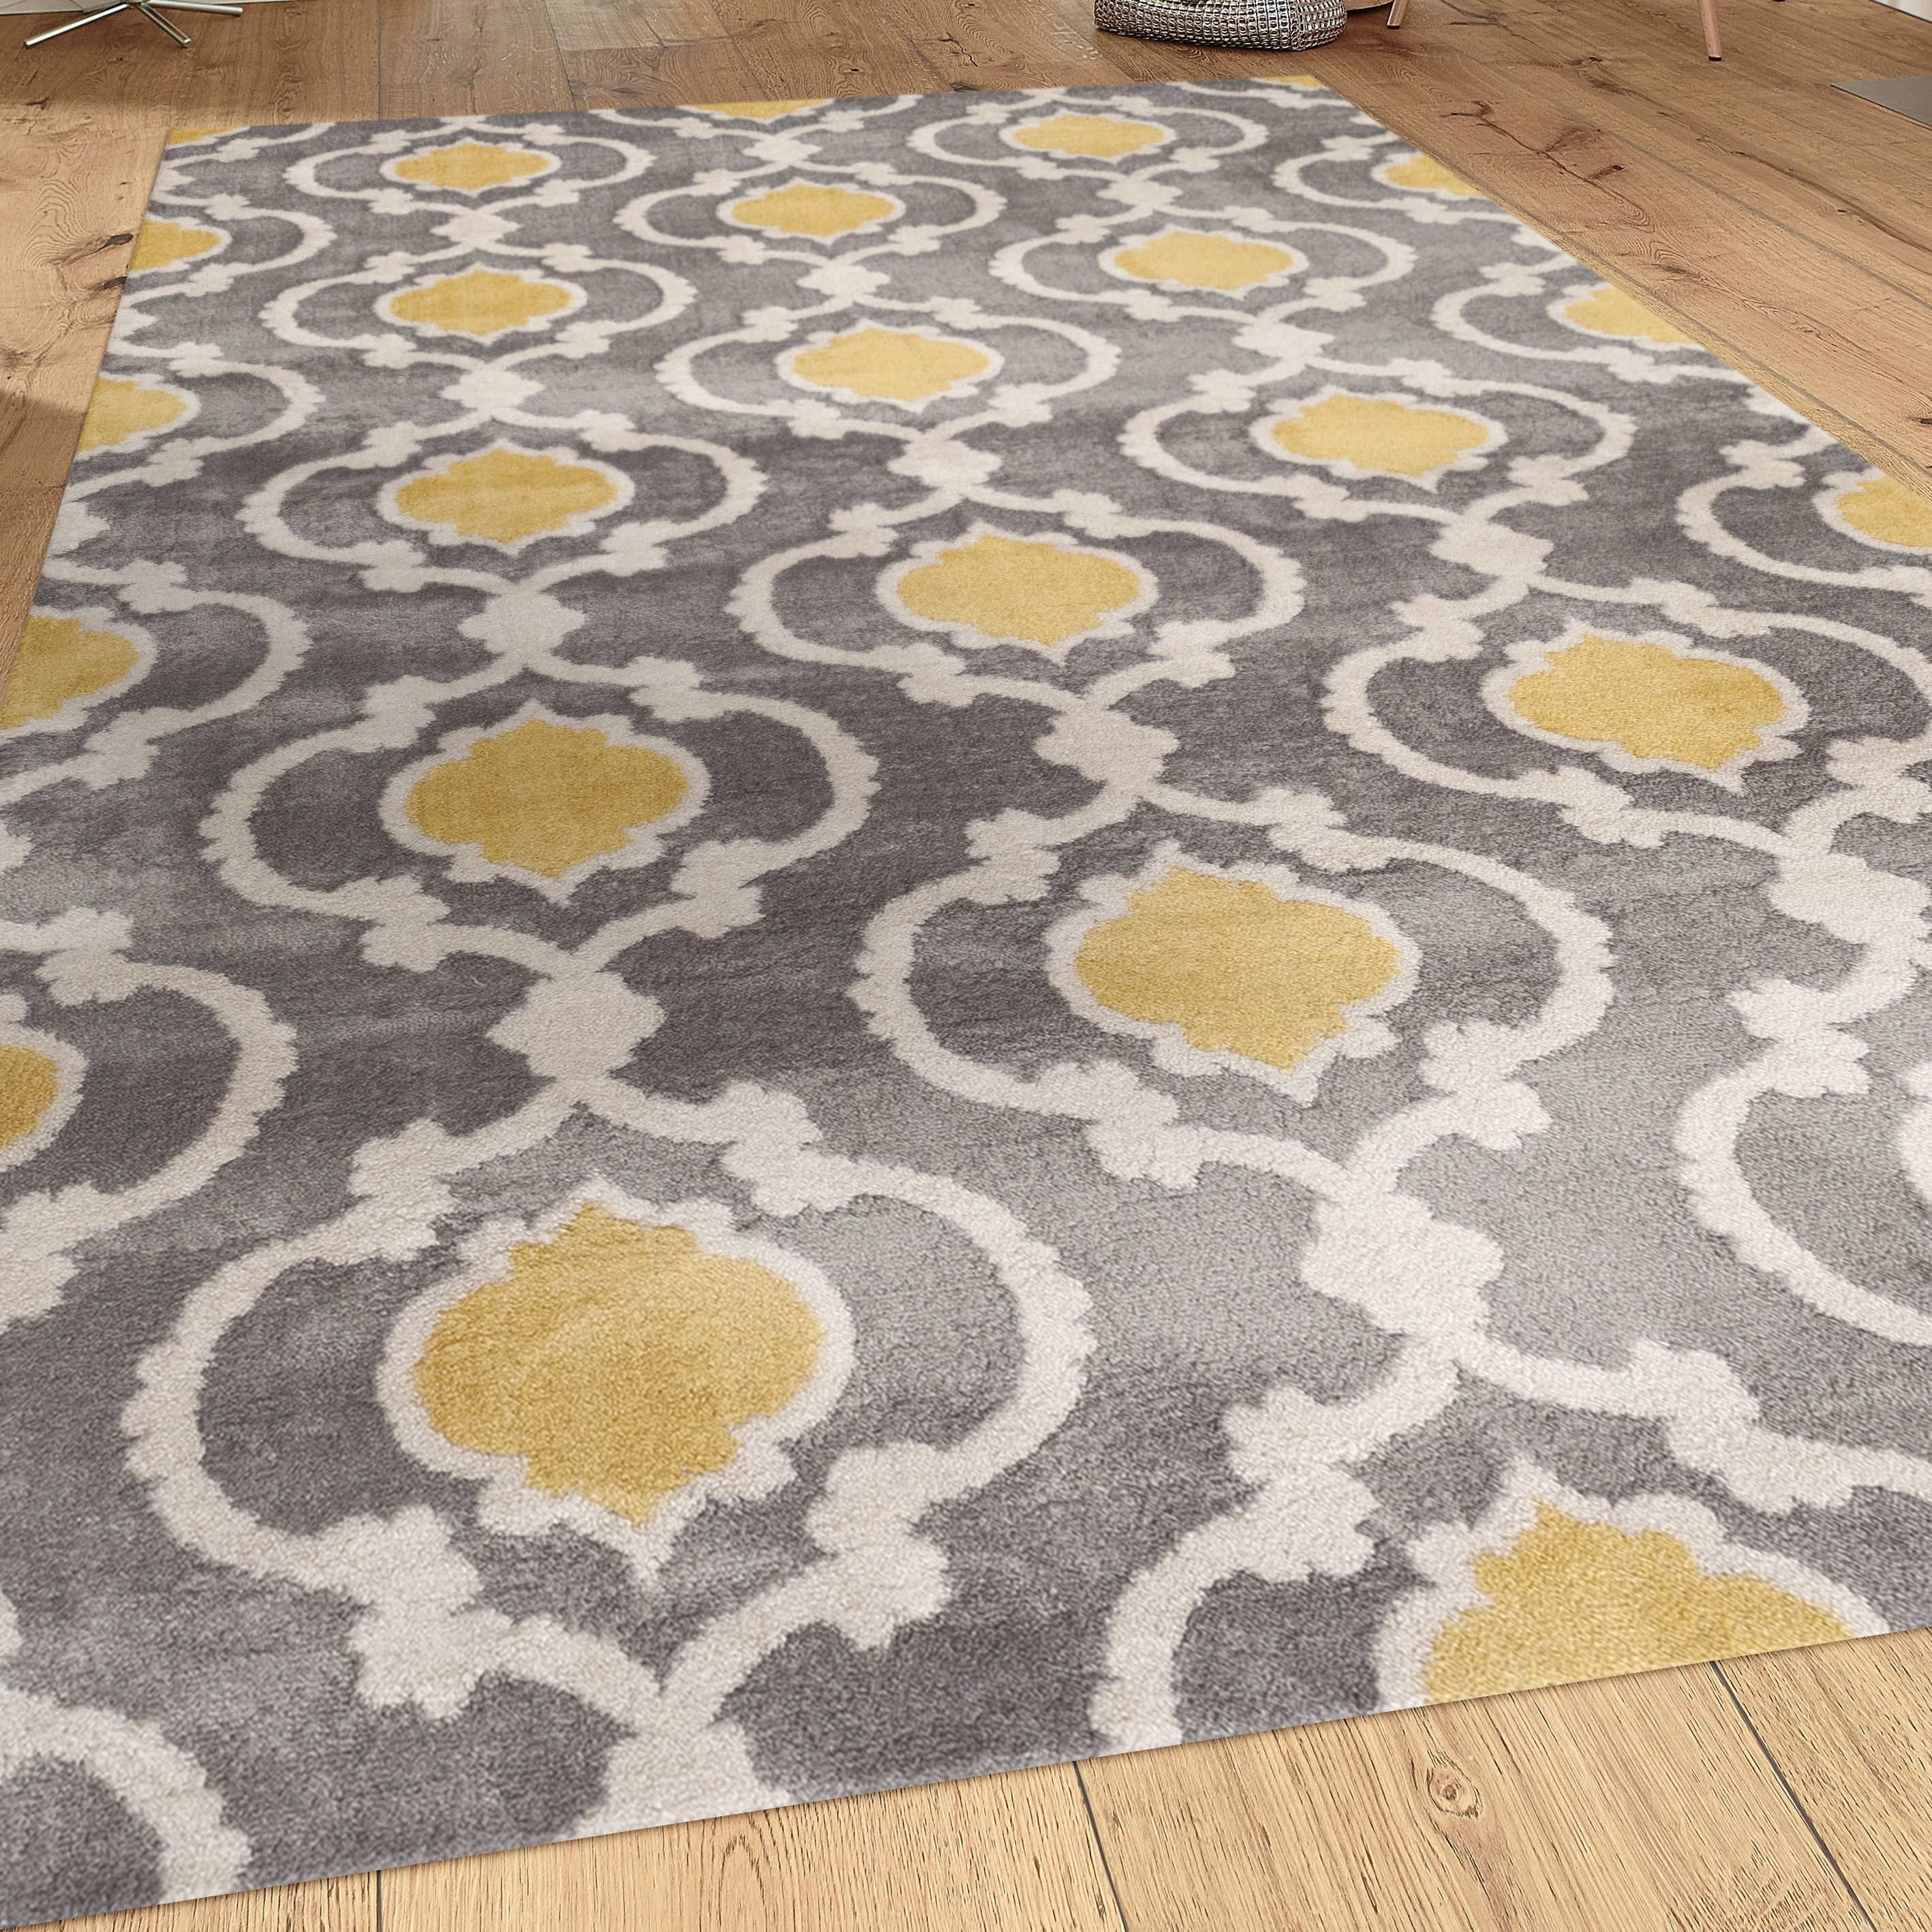 Grey Yellow Rug For A Room With Bright Blue Navy Accents